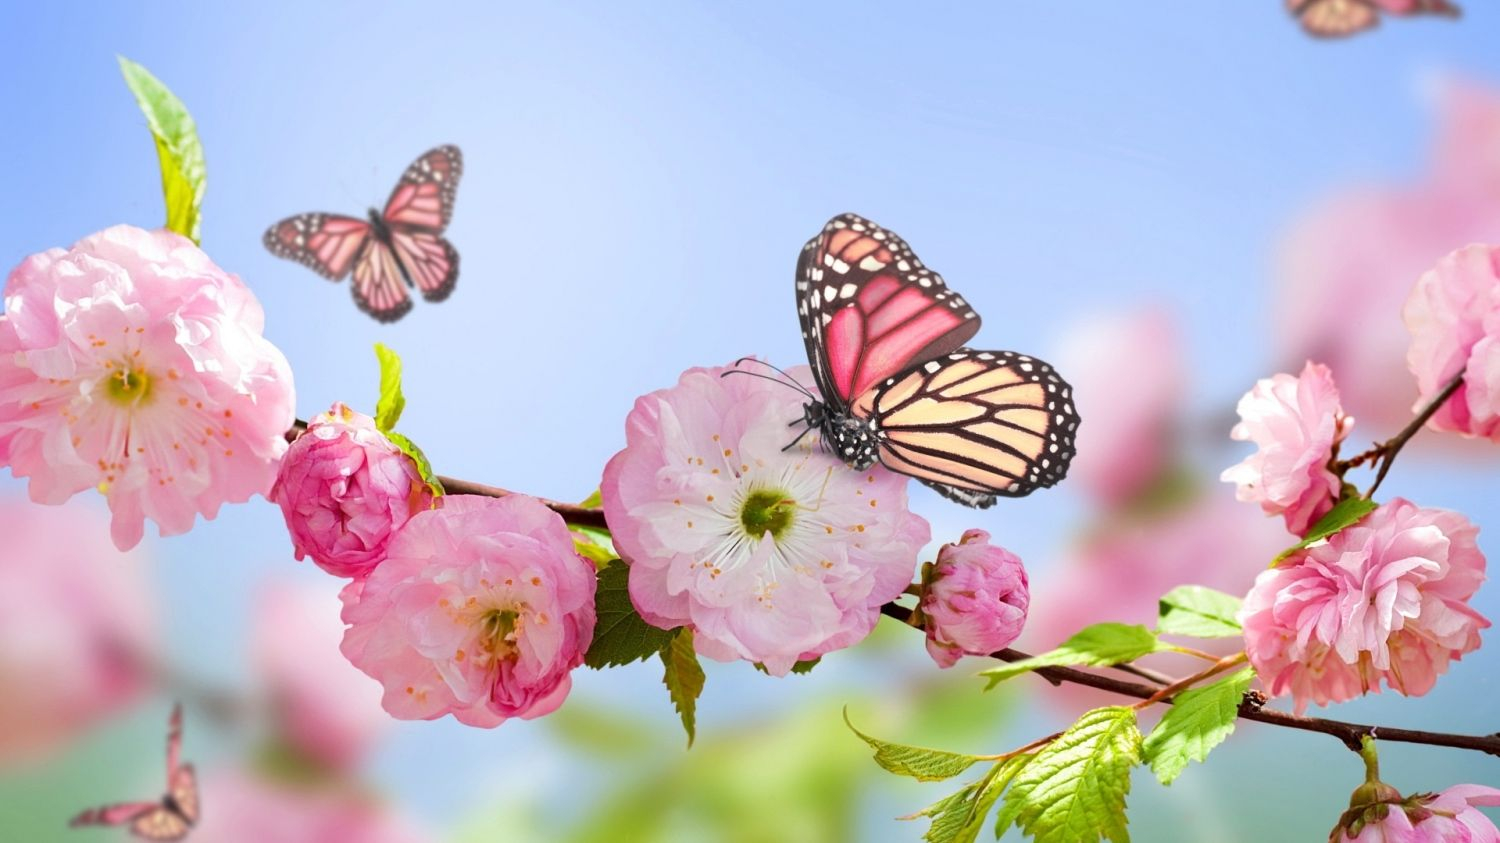 Pink Flowers Blooms And Butterfly Wallpaper